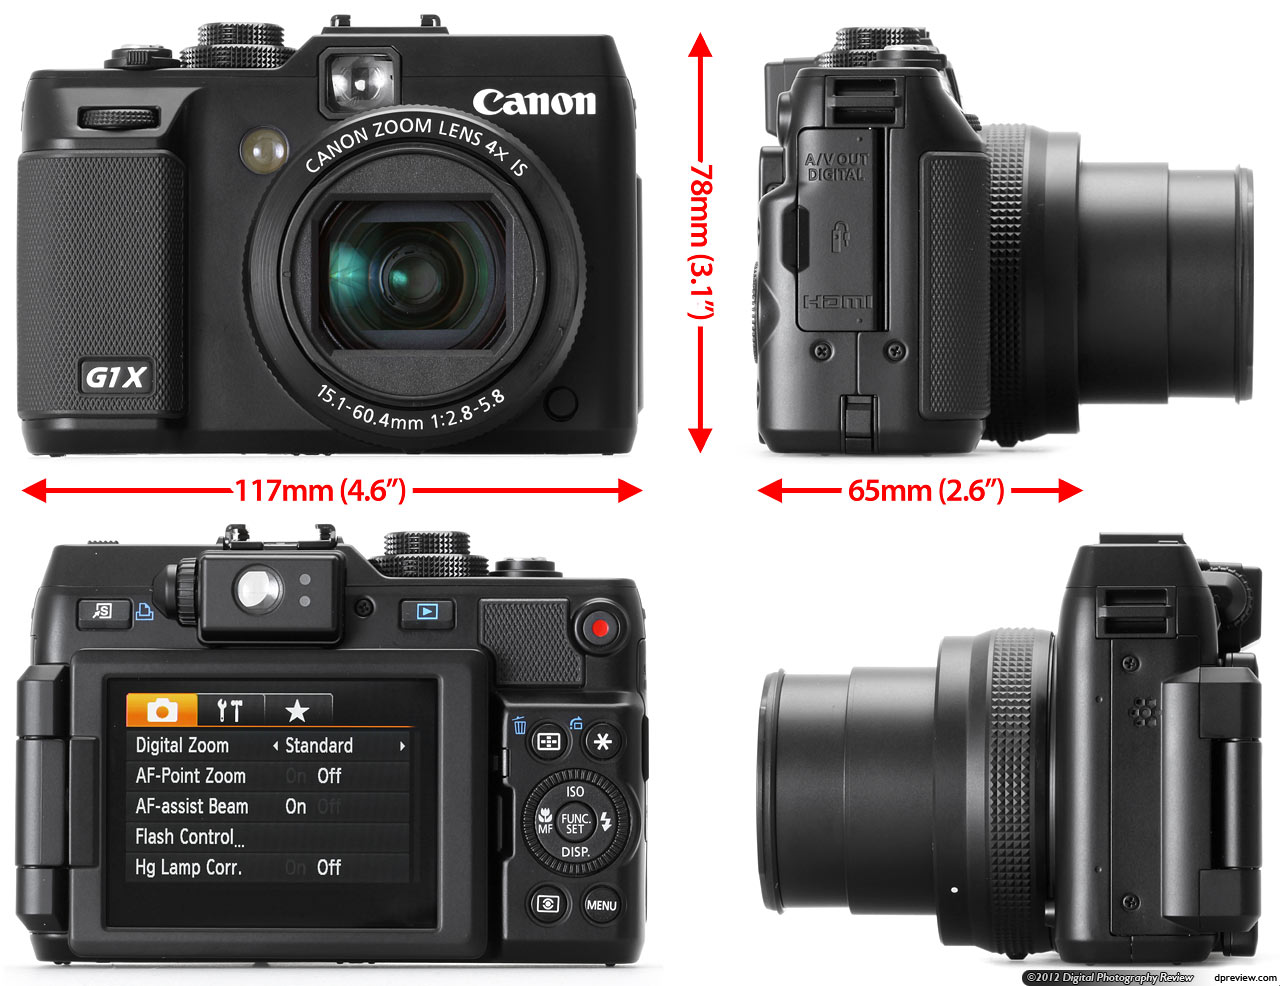 Grande Design Powershot G Range Canon Powershot X Digital Photography Review Canon G Series Printer Price Canon G Series Printer Driver Clear From Even A Casual Glance That X Is A Powershot Cast dpreview Canon G Series